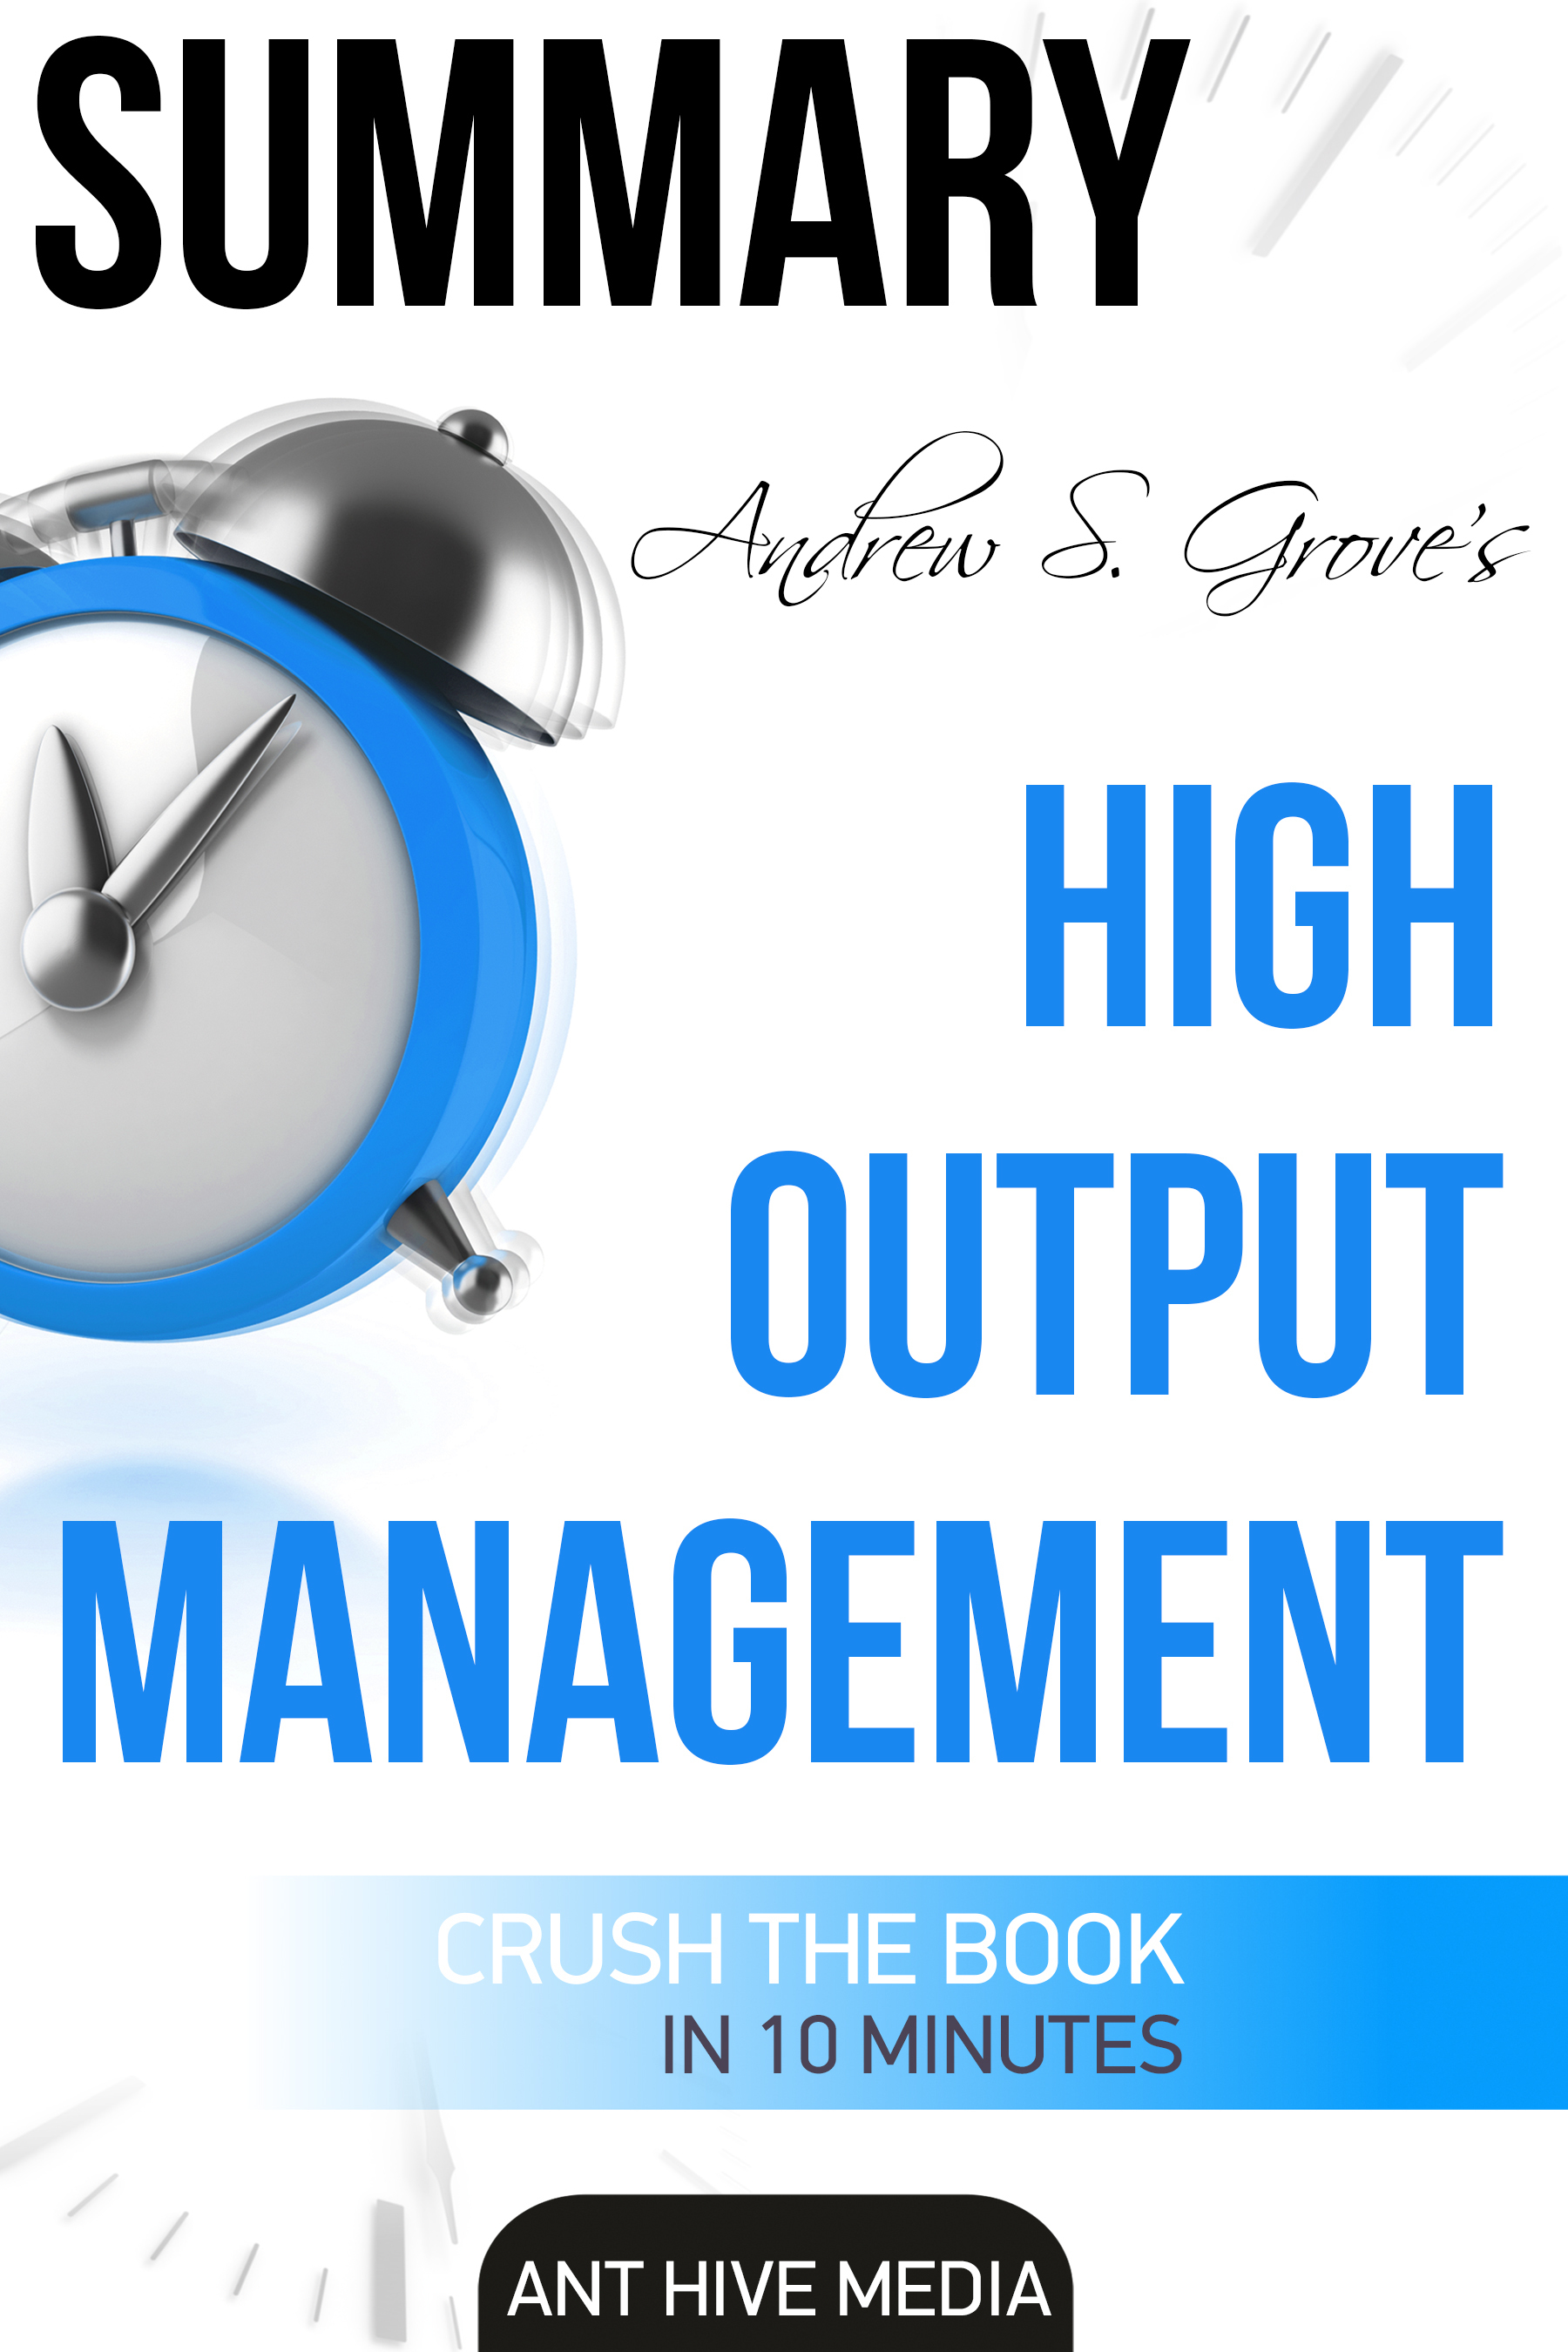 Andrew S. Grove's High Output Management | Summary